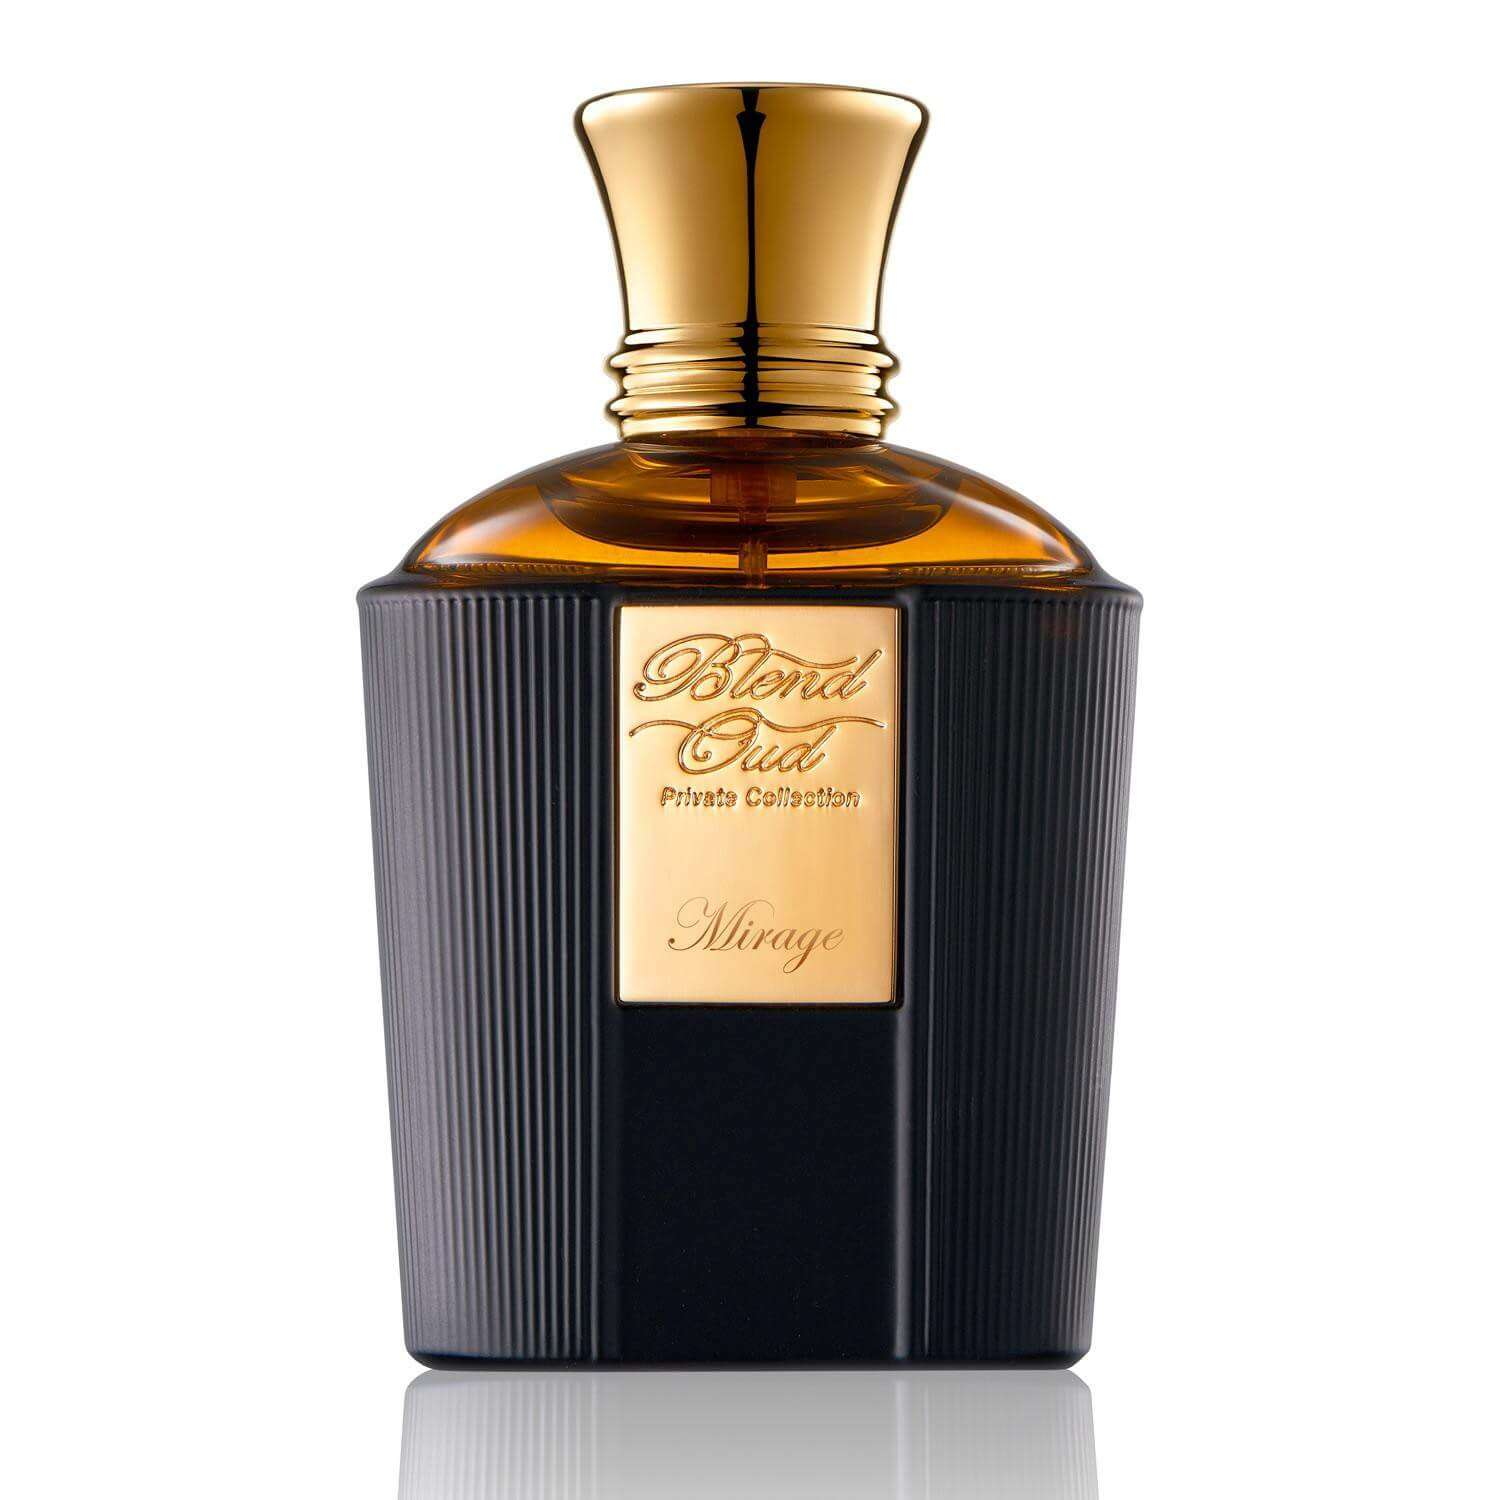 Blend Oud Mirage Private Collection EDP 60ML (Unisex)